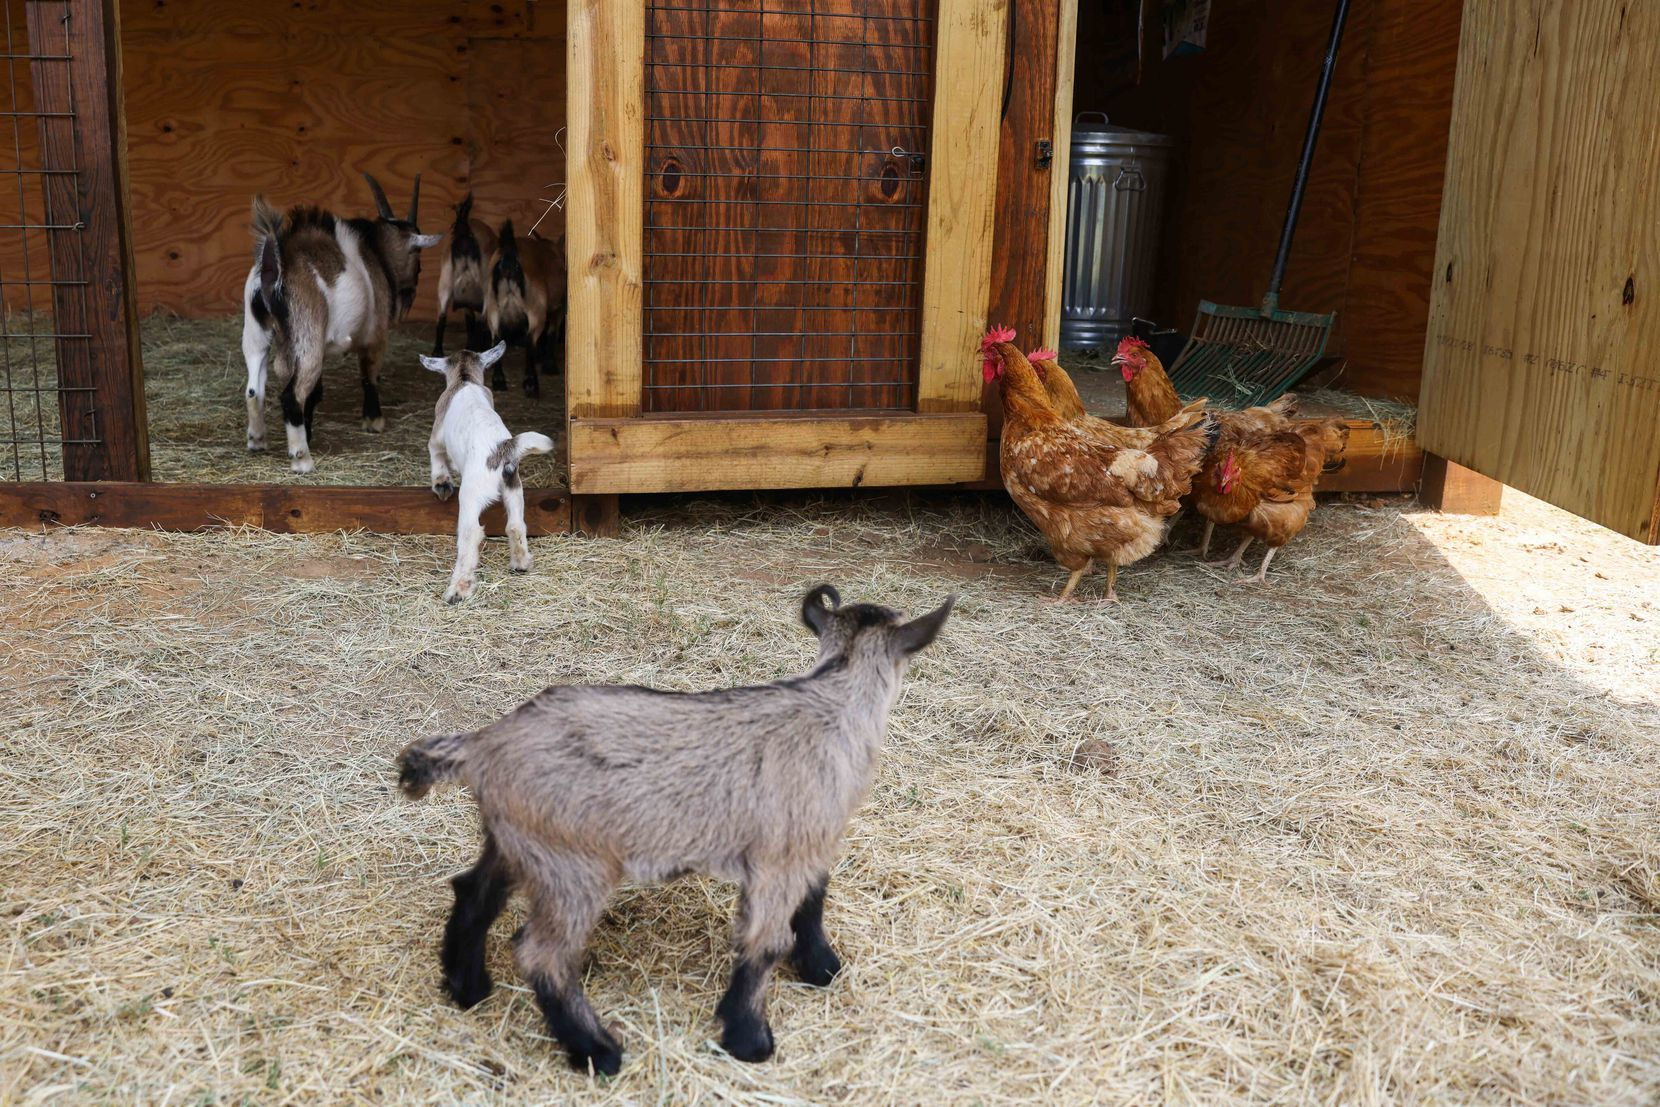 Chickens and goats share the grounds with residents of 29 Acres in Cross Roads.